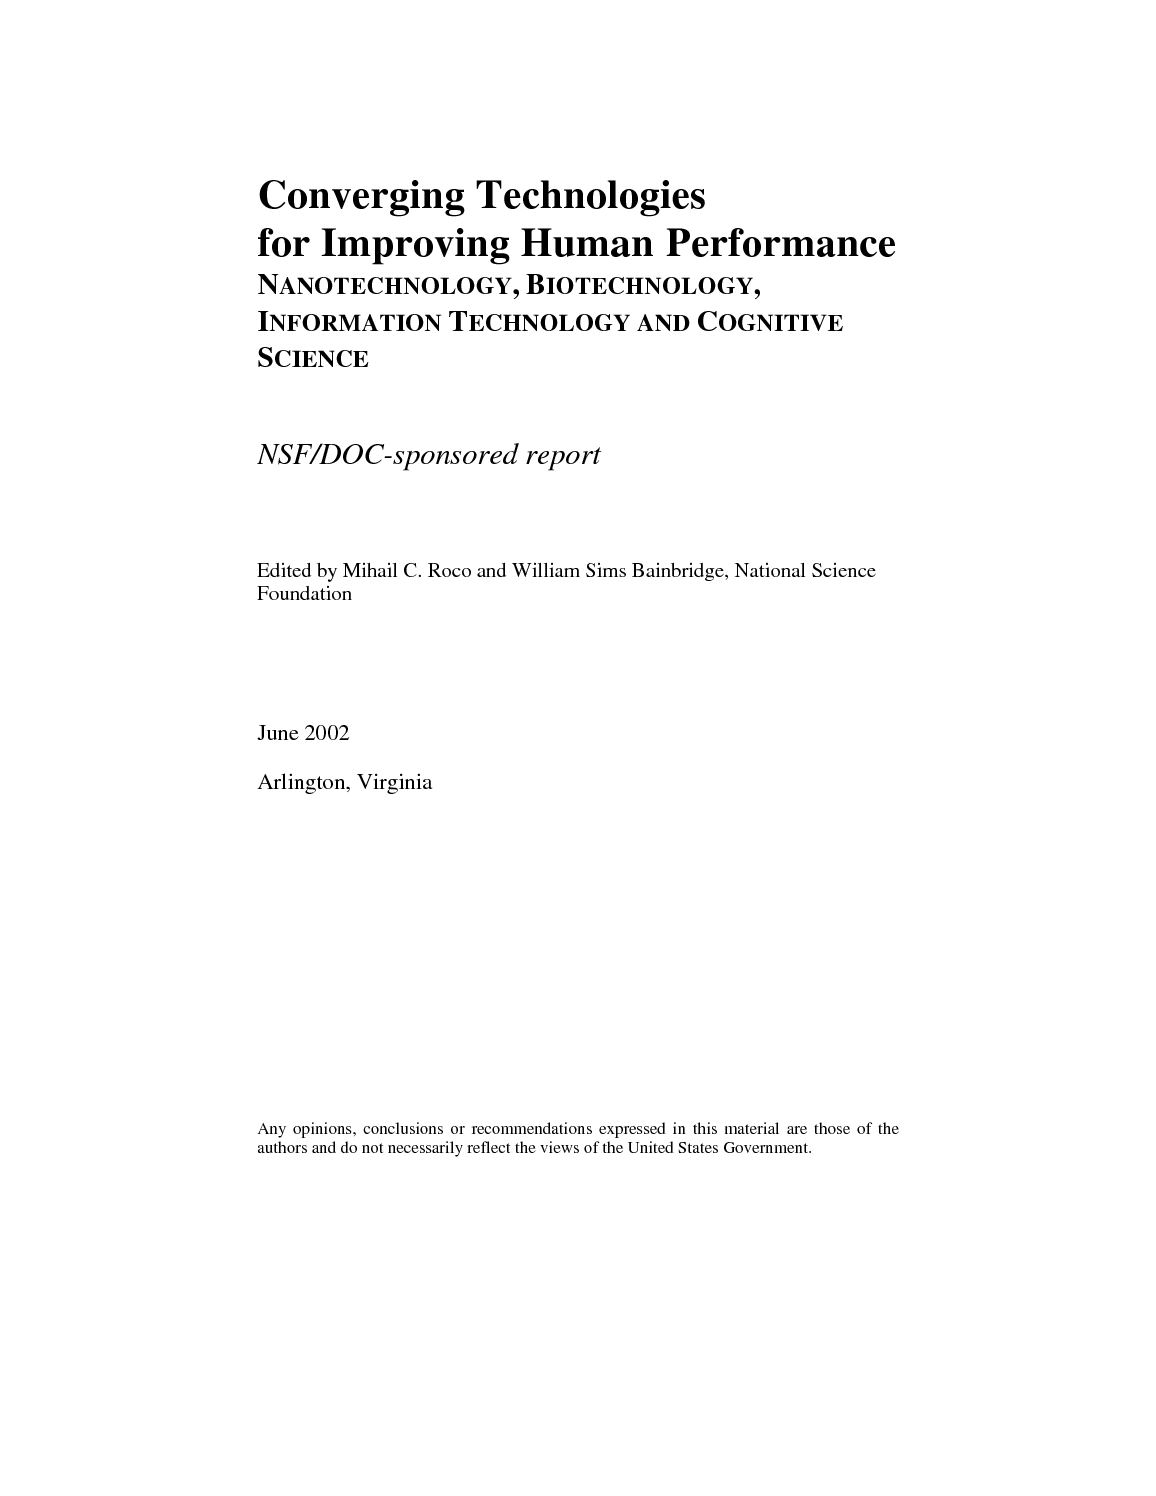 Calamo Converging Technologies For Improving Human Performance Ibanez At100 Wiring Diagram